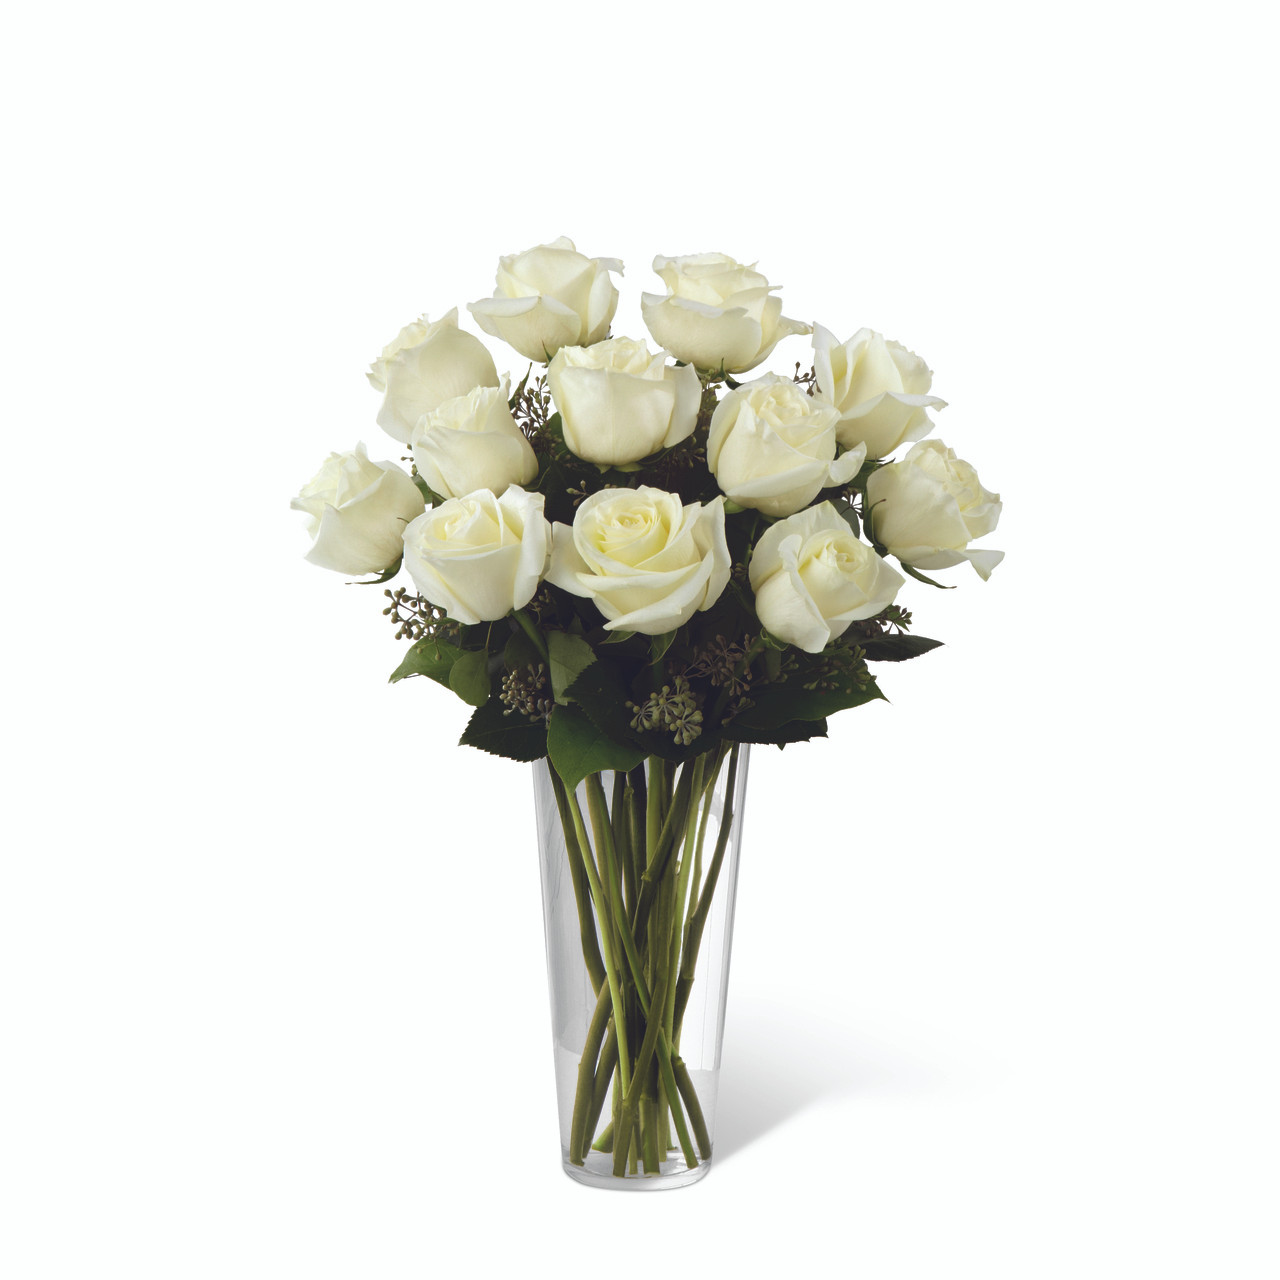 White roses long island flower delivery dozen white roses long island flower delivery mightylinksfo Image collections